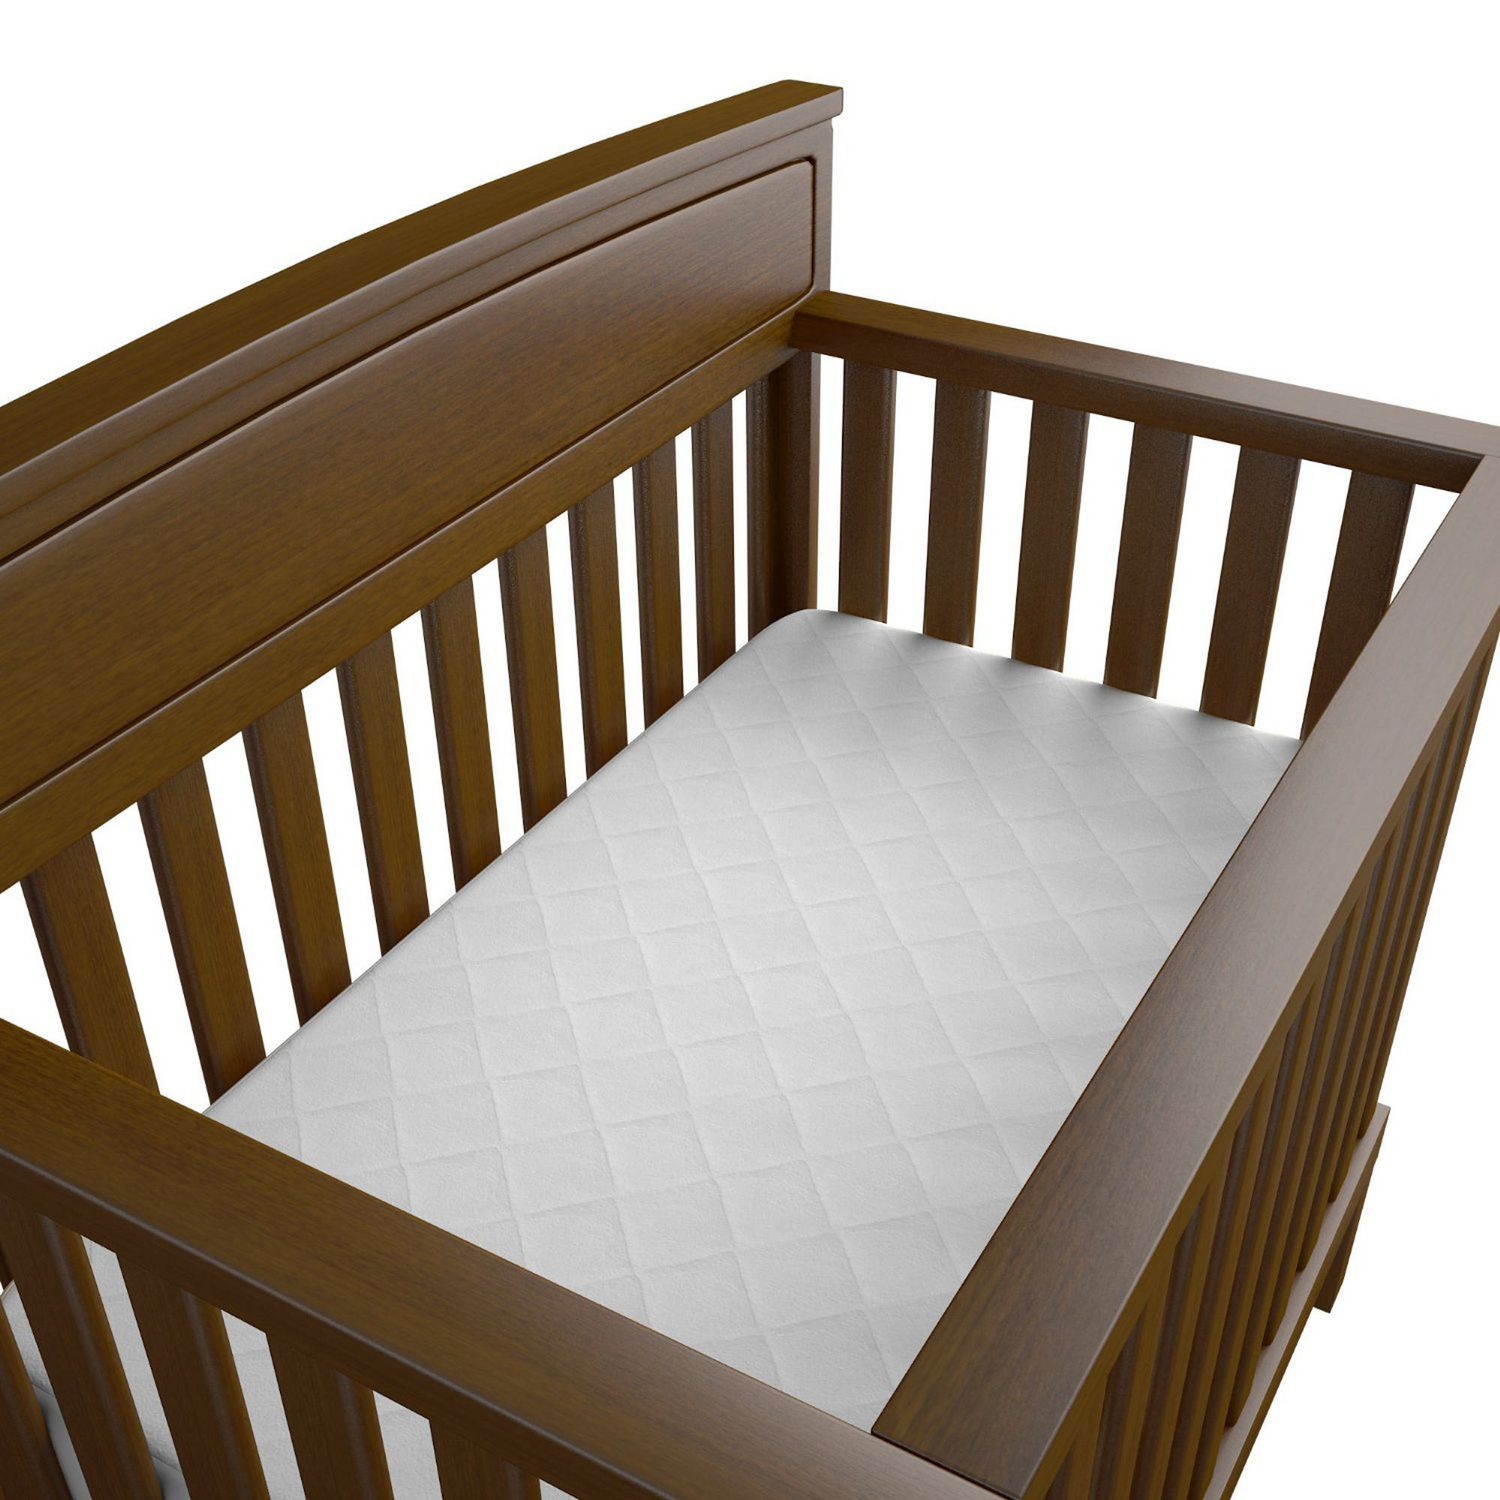 mat silk flax l pad pads mattress crib safe fairy folding bedding baby cool bamboo sleeping toddler summer cribs dp amazon com infant breathable flat